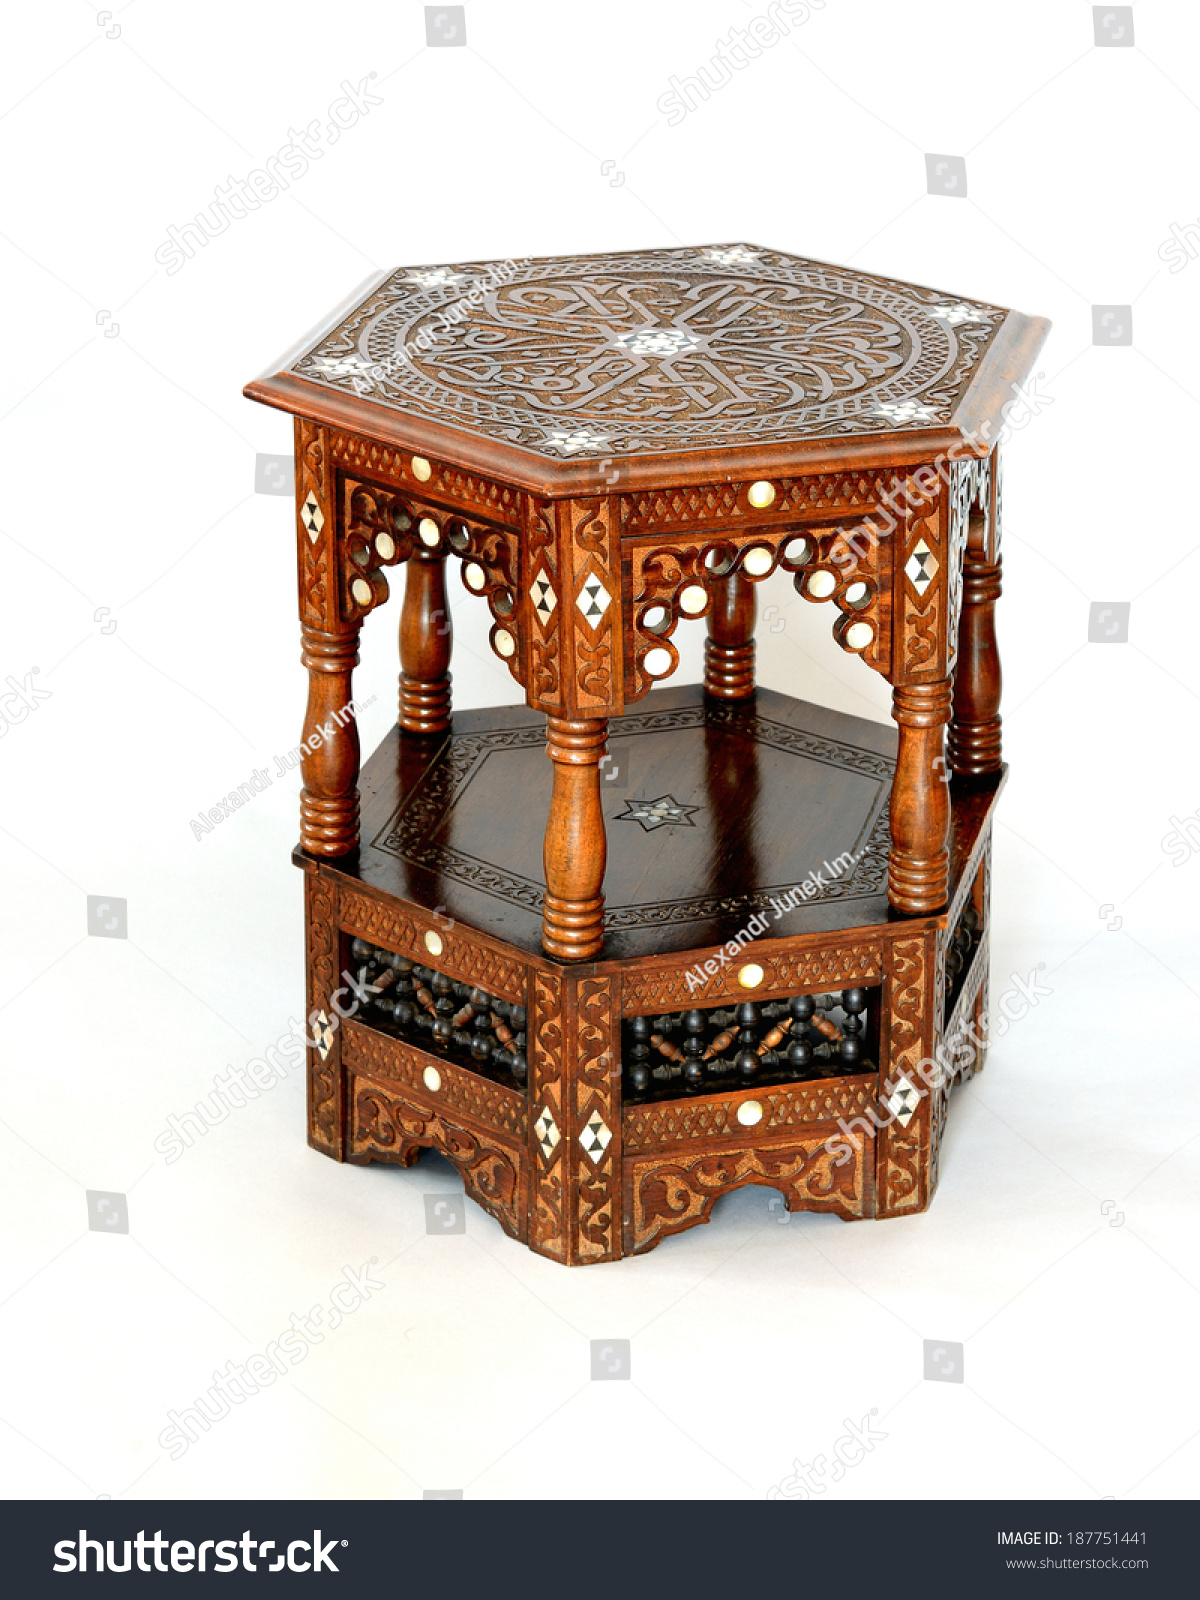 Syrian inlaid coffee table stock photo 187751441 shutterstock syrian inlaid coffee table geotapseo Choice Image